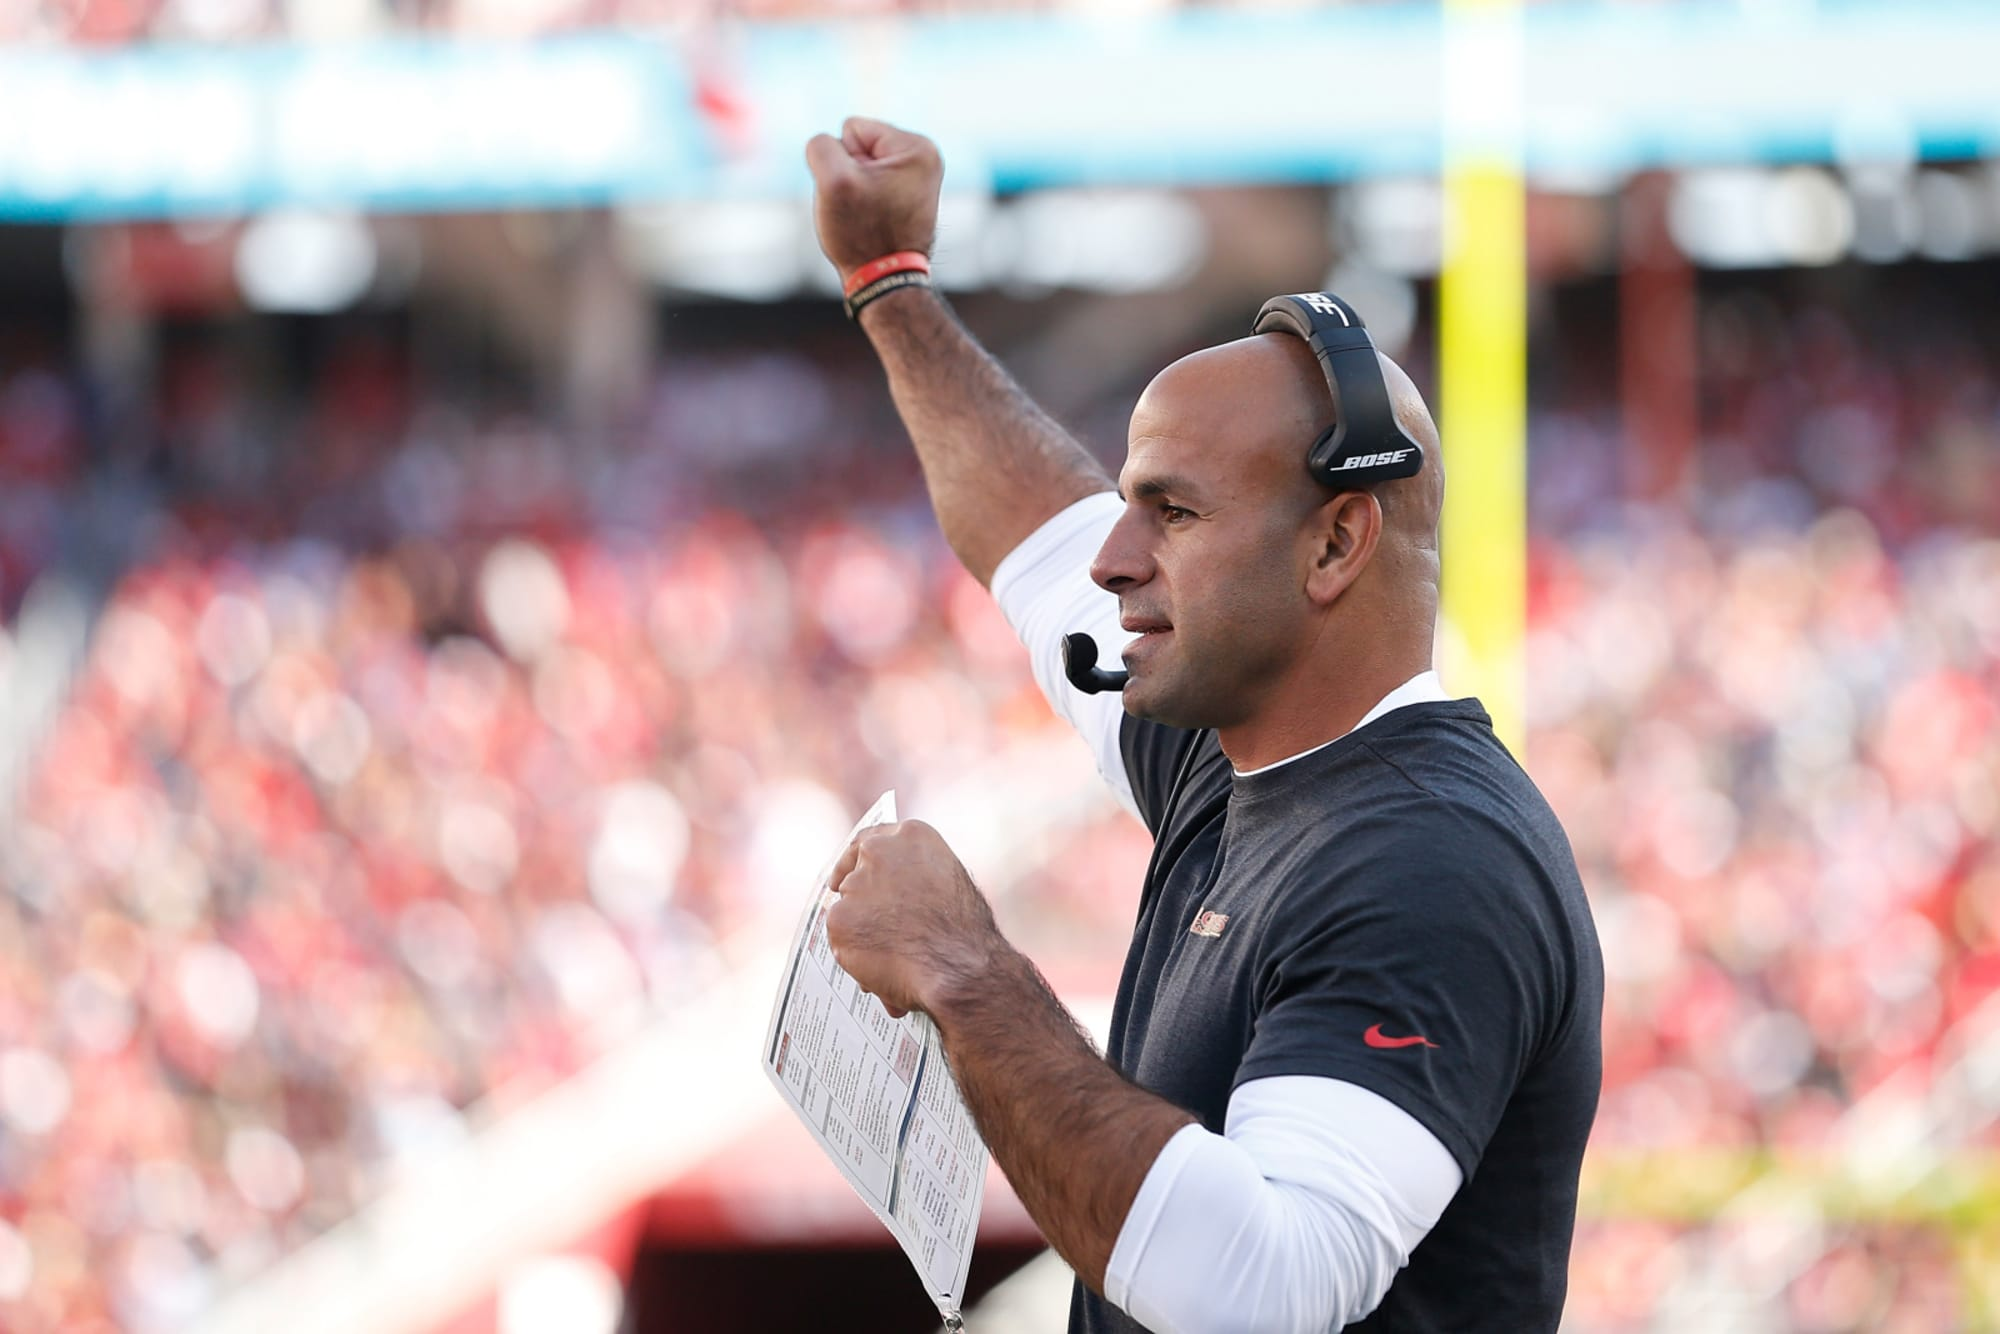 Jets opt for opposite approach by hiring Robert Saleh